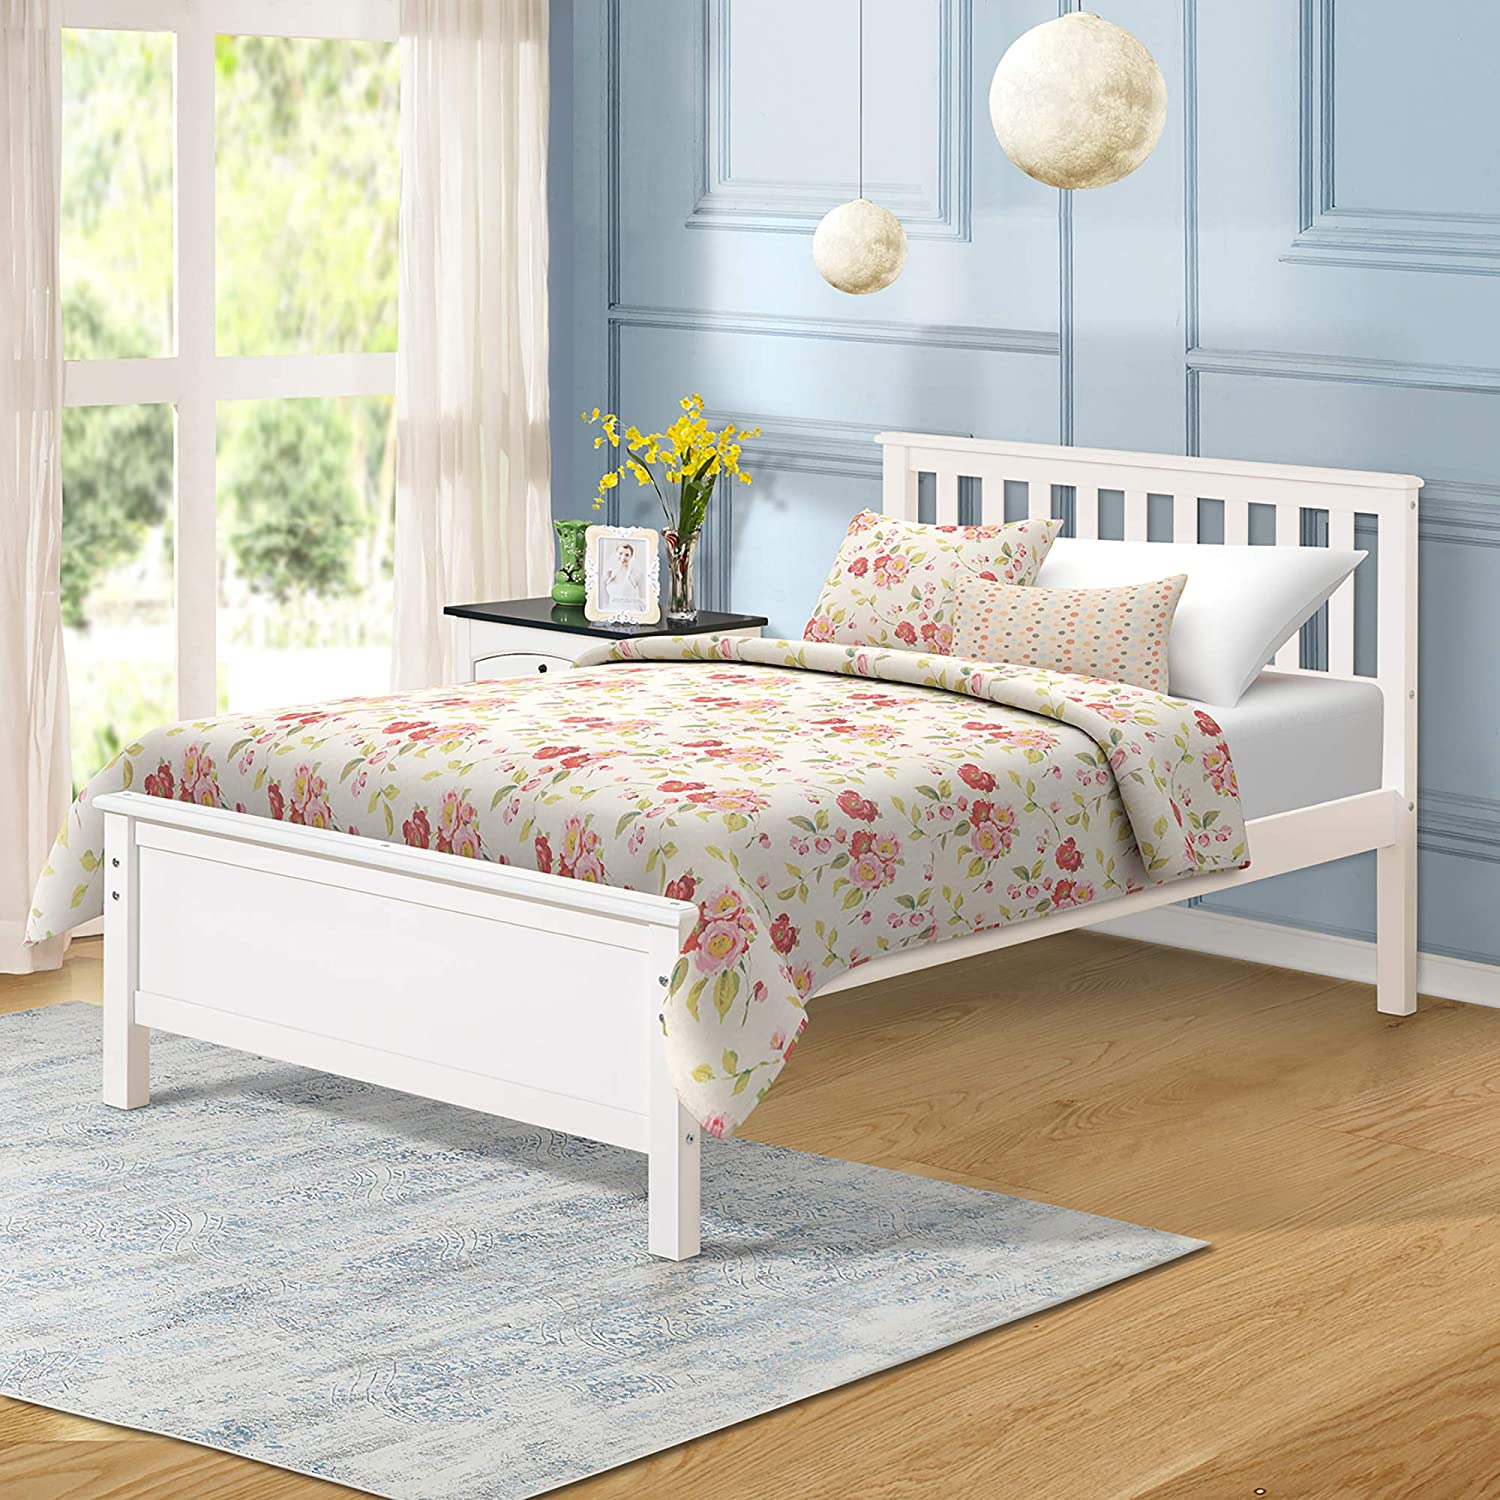 Harper Bright Designs Wood Platform Bed with Headboard, Footboard, Wood Slat Support, No Box Spring Needed Twin, White